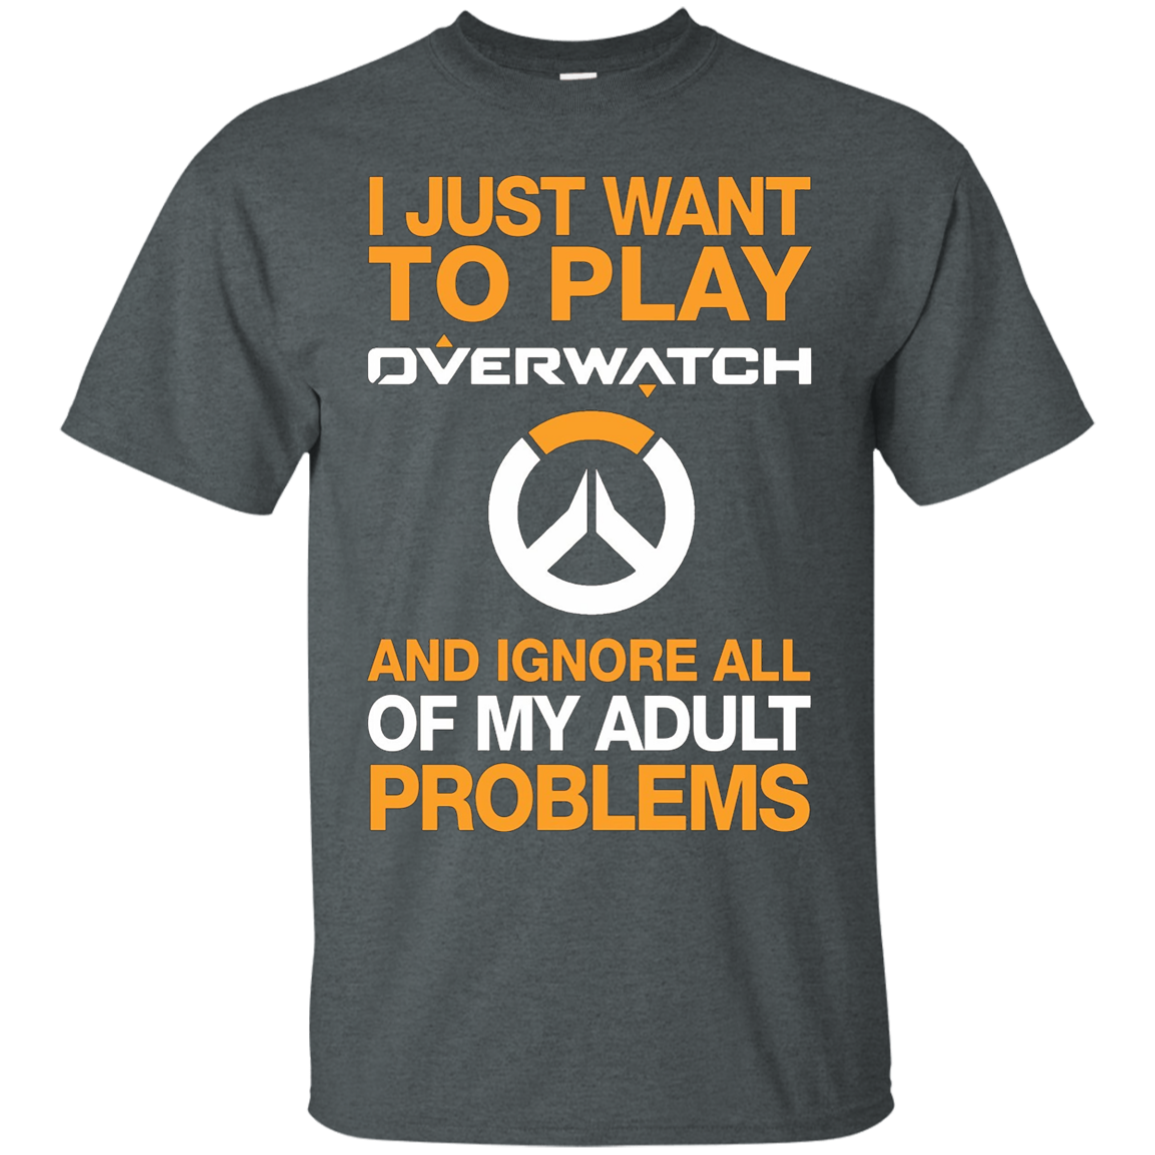 JUST WANT TO PLAY OVERWATCH and IGNORE ALL MY ADULT PROBLEM